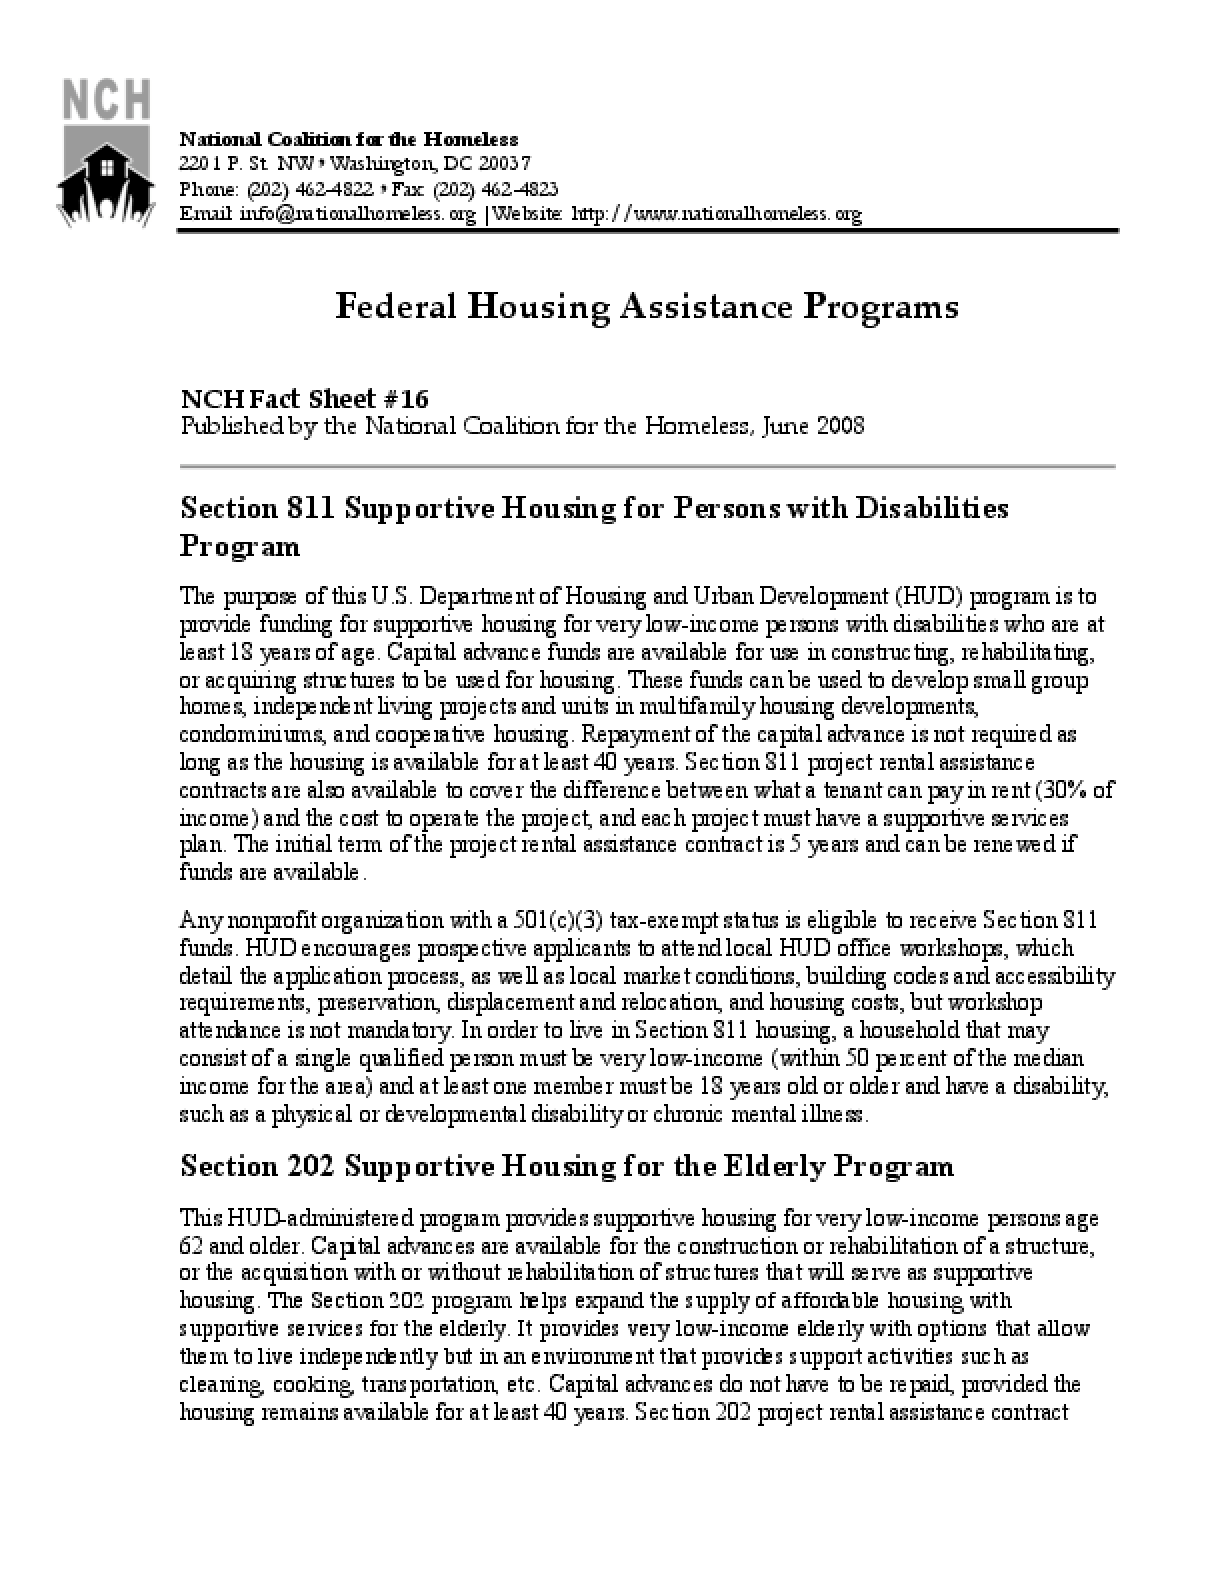 Federal Housing Assistance Programs Factsheet